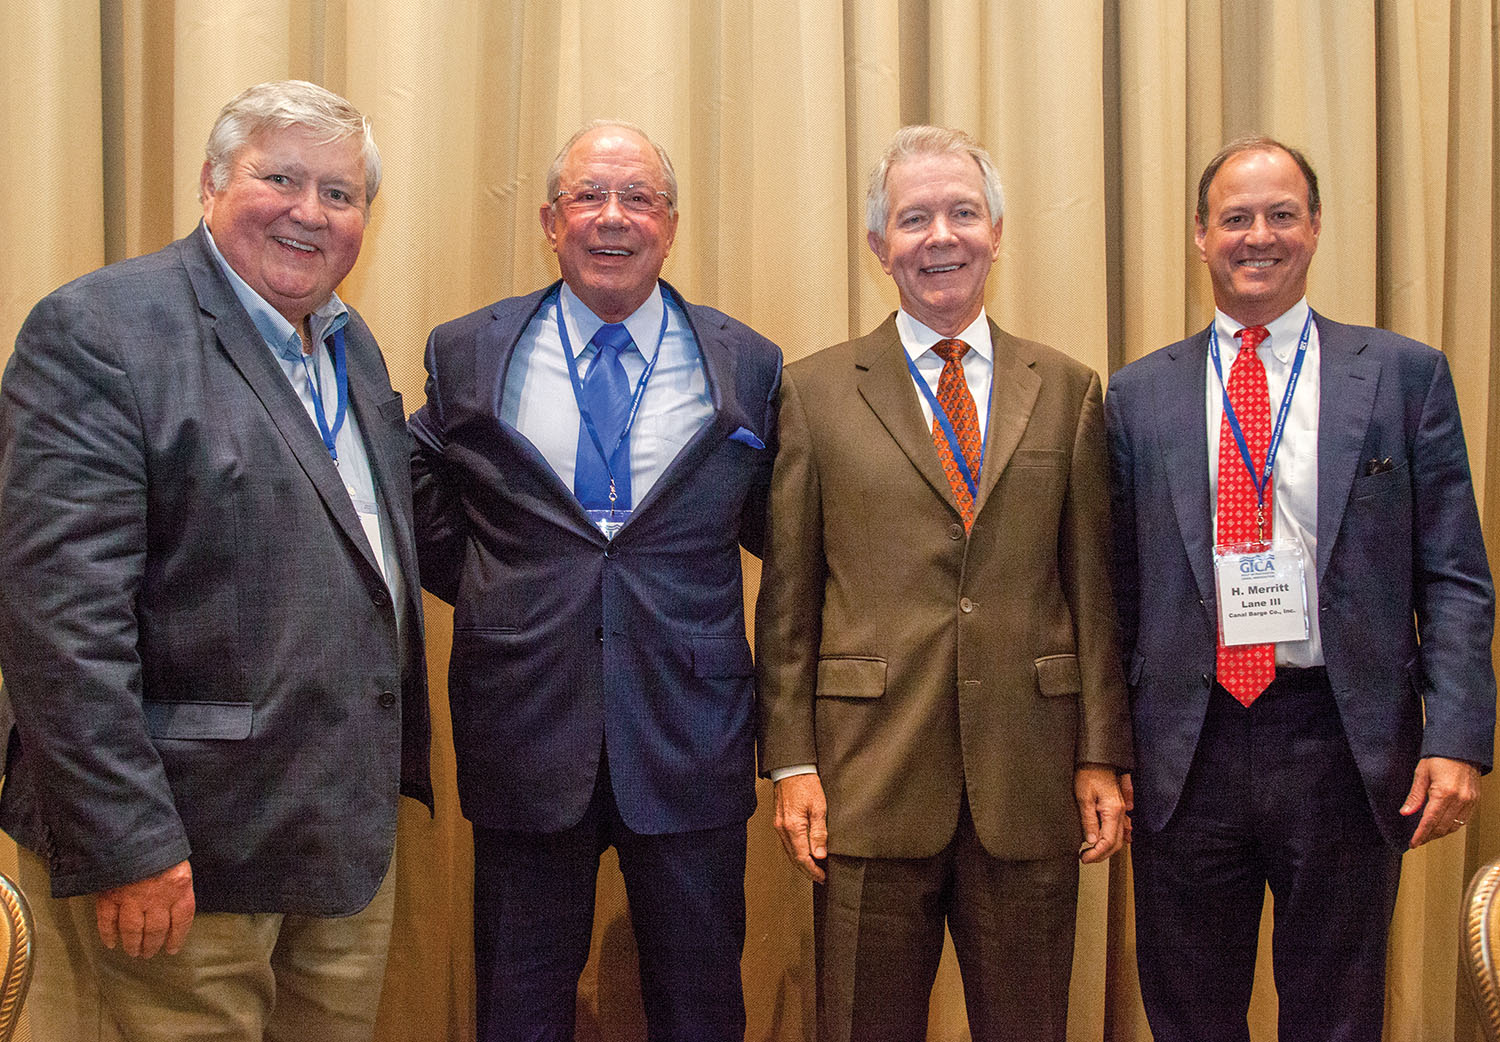 CEO panel, from left: Jerry Clower, Pat Studdert, Steve Golding and Merritt Lane III. (Photo by Frank McCormack)